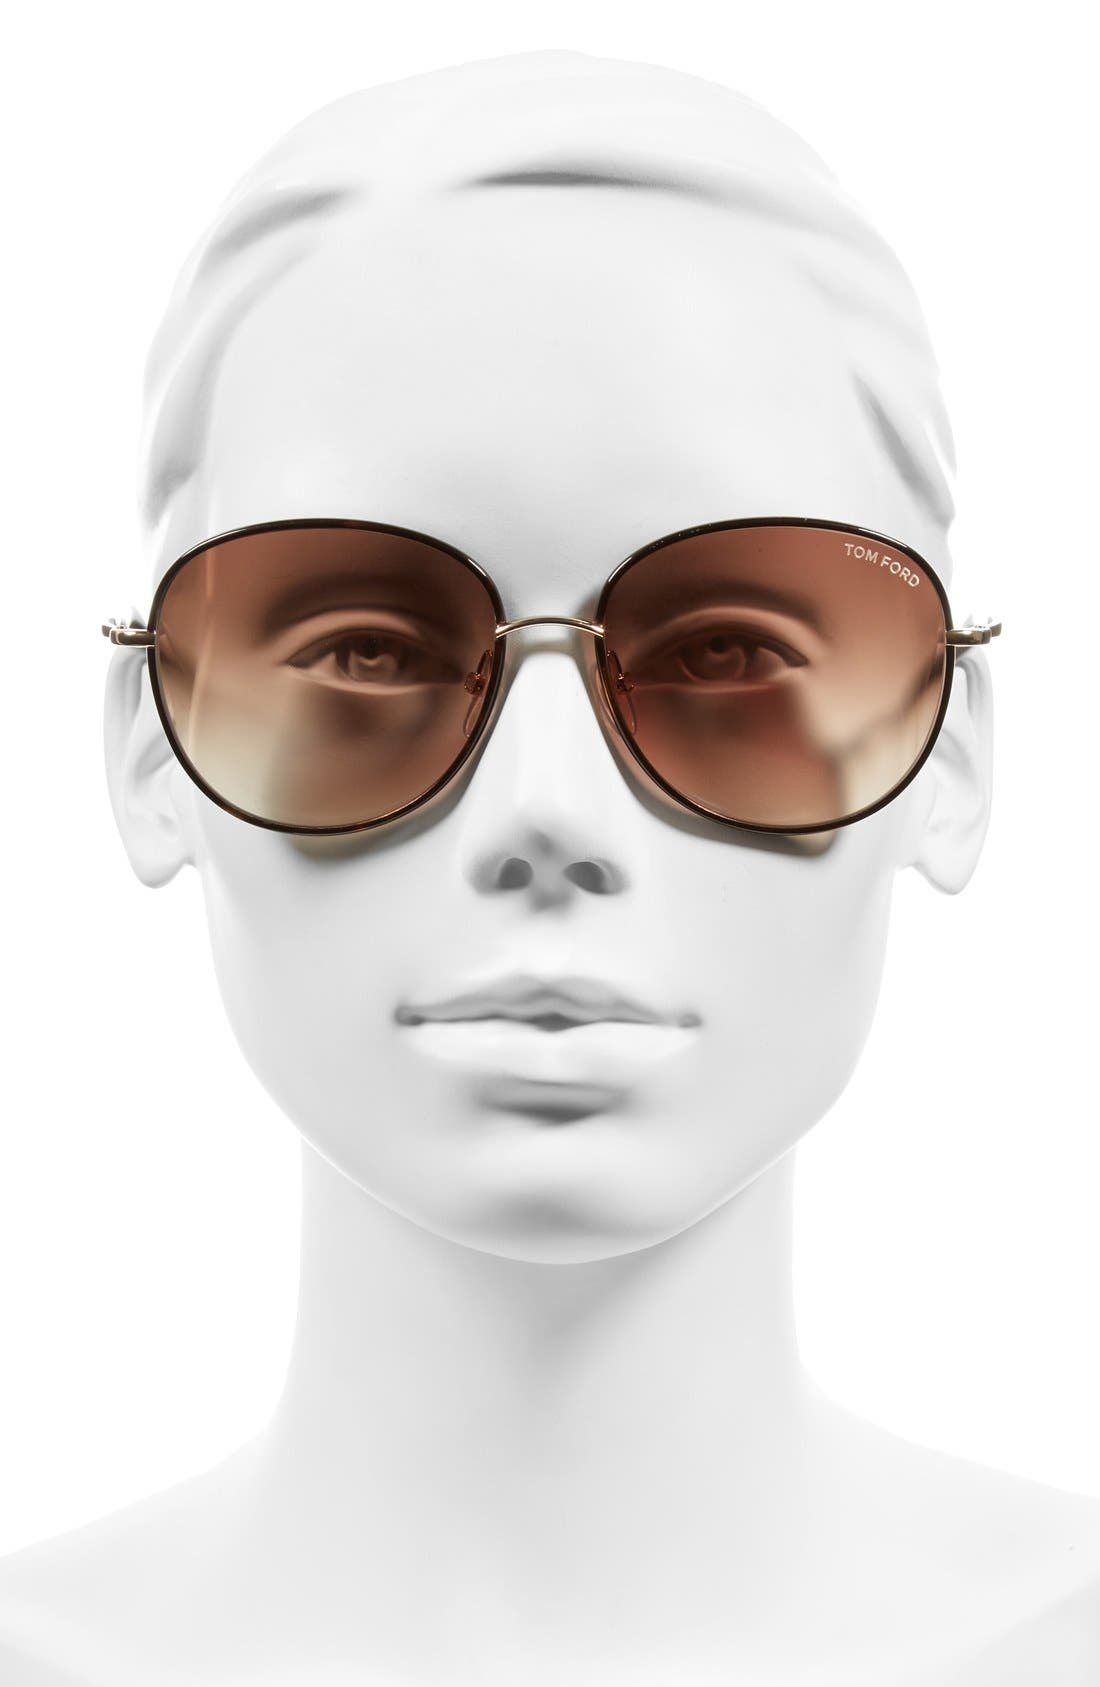 Georgia 59mm Sunglasses,                             Alternate thumbnail 5, color,                             ROSE GOLD/ HAVANA/ BROWN